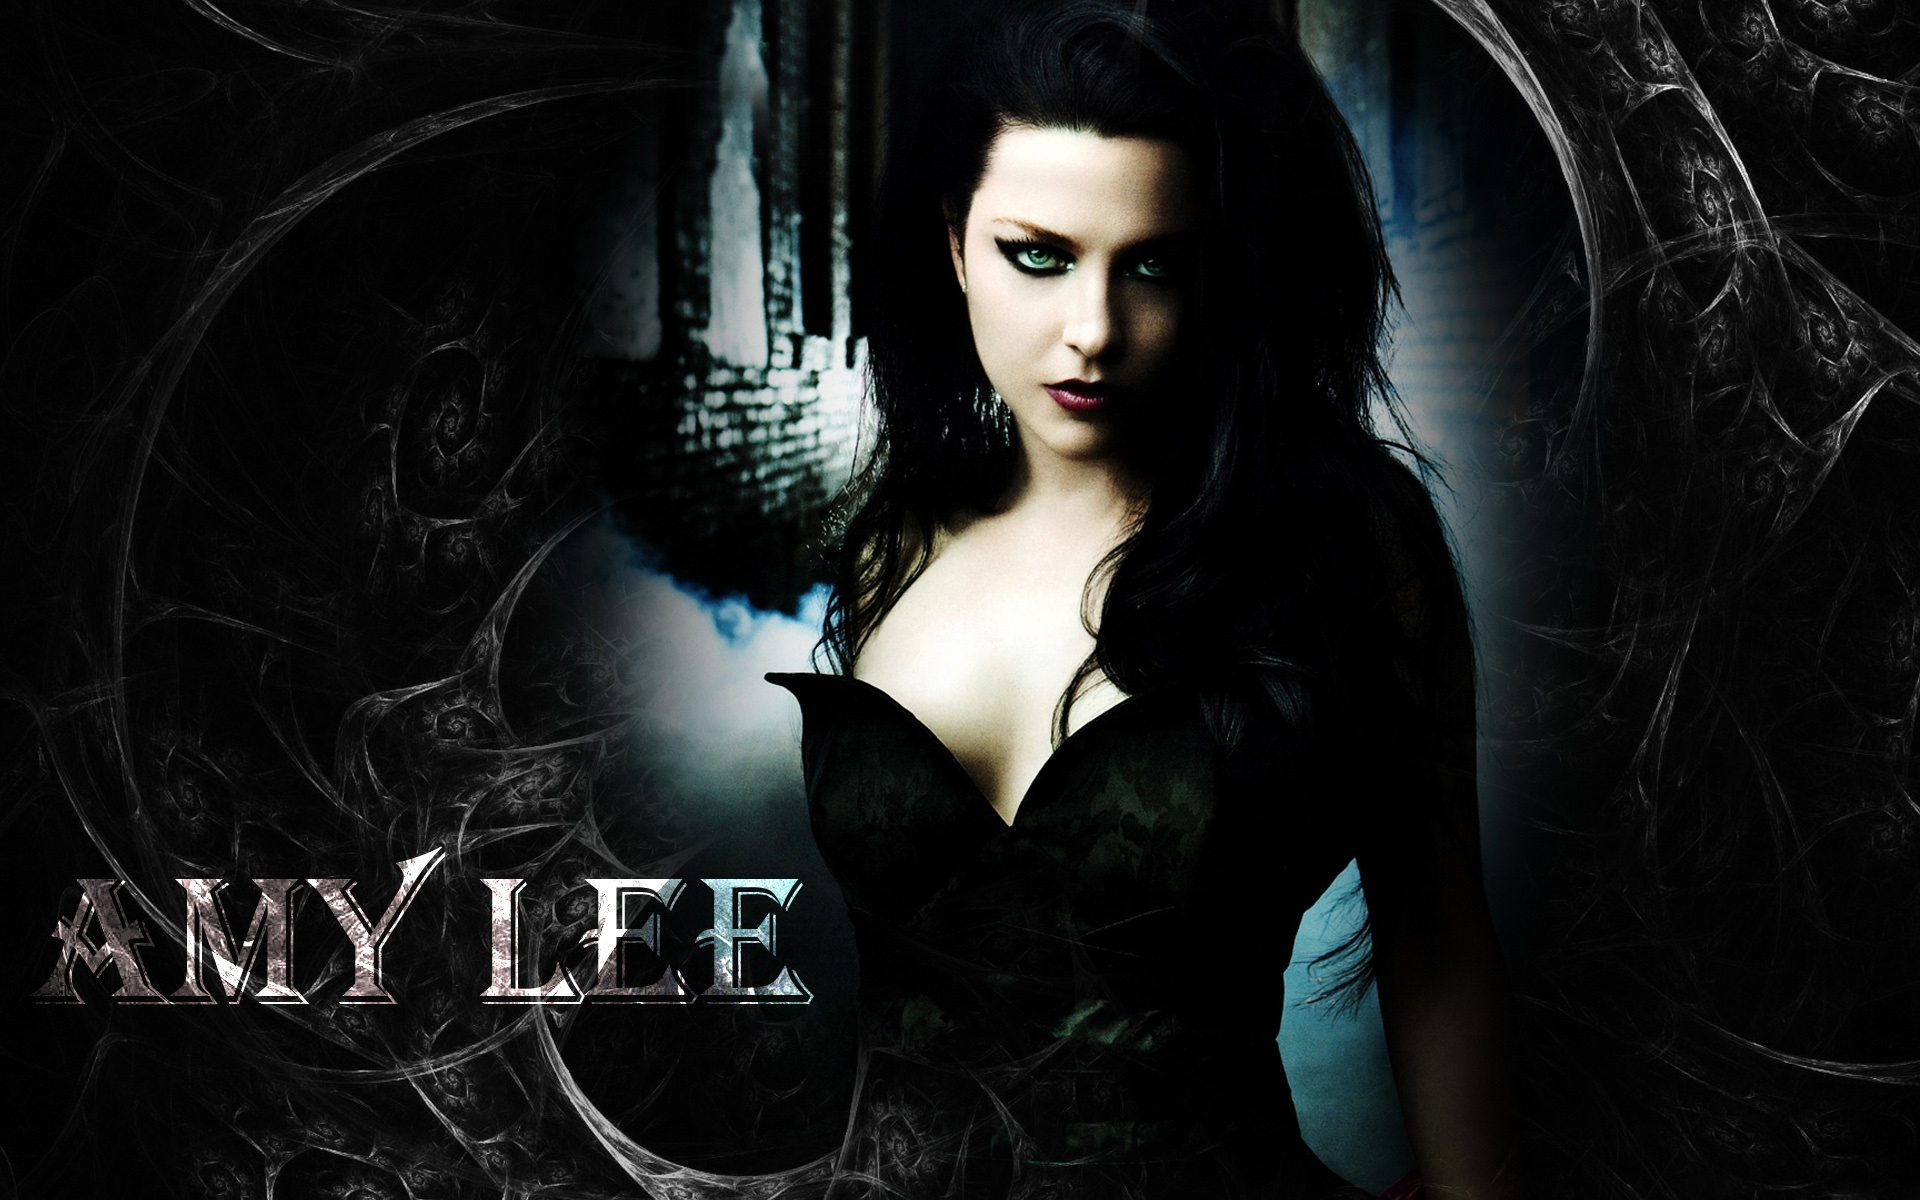 Amy Lee Backgrounds 4K Download 1920x1200